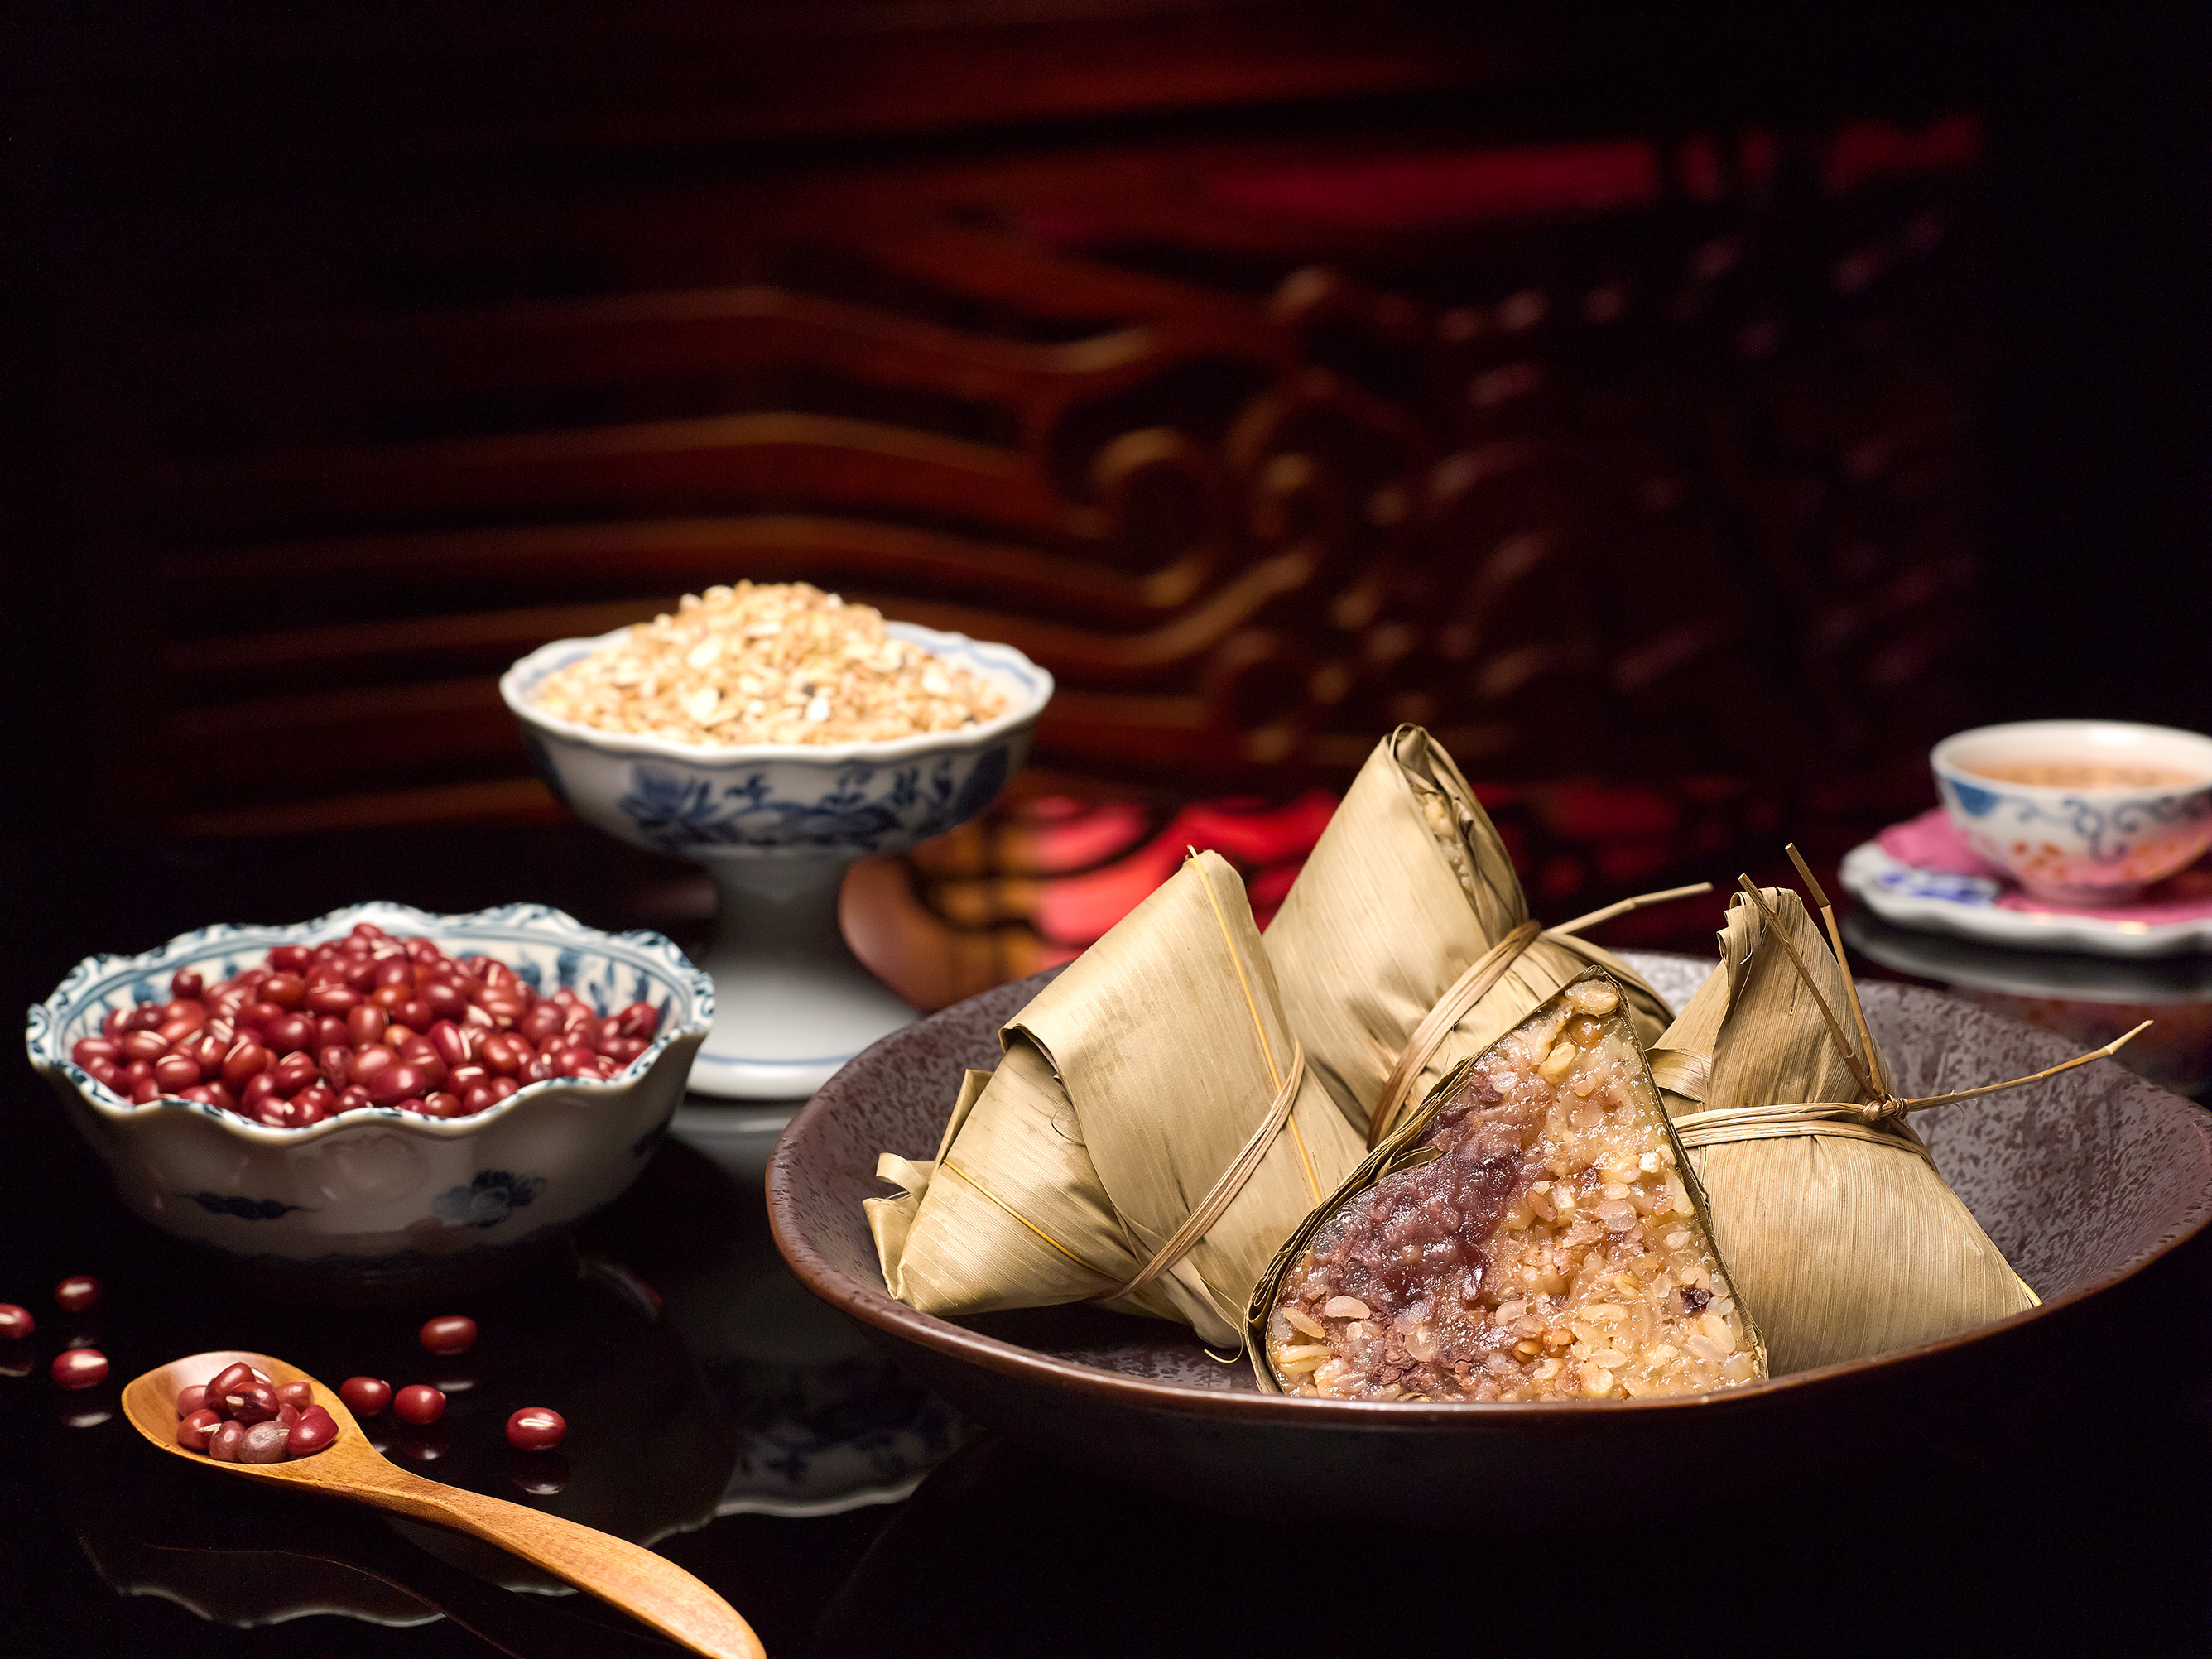 For the health-conscious, the Fragrant Red Bean Dumpling with Multi ...